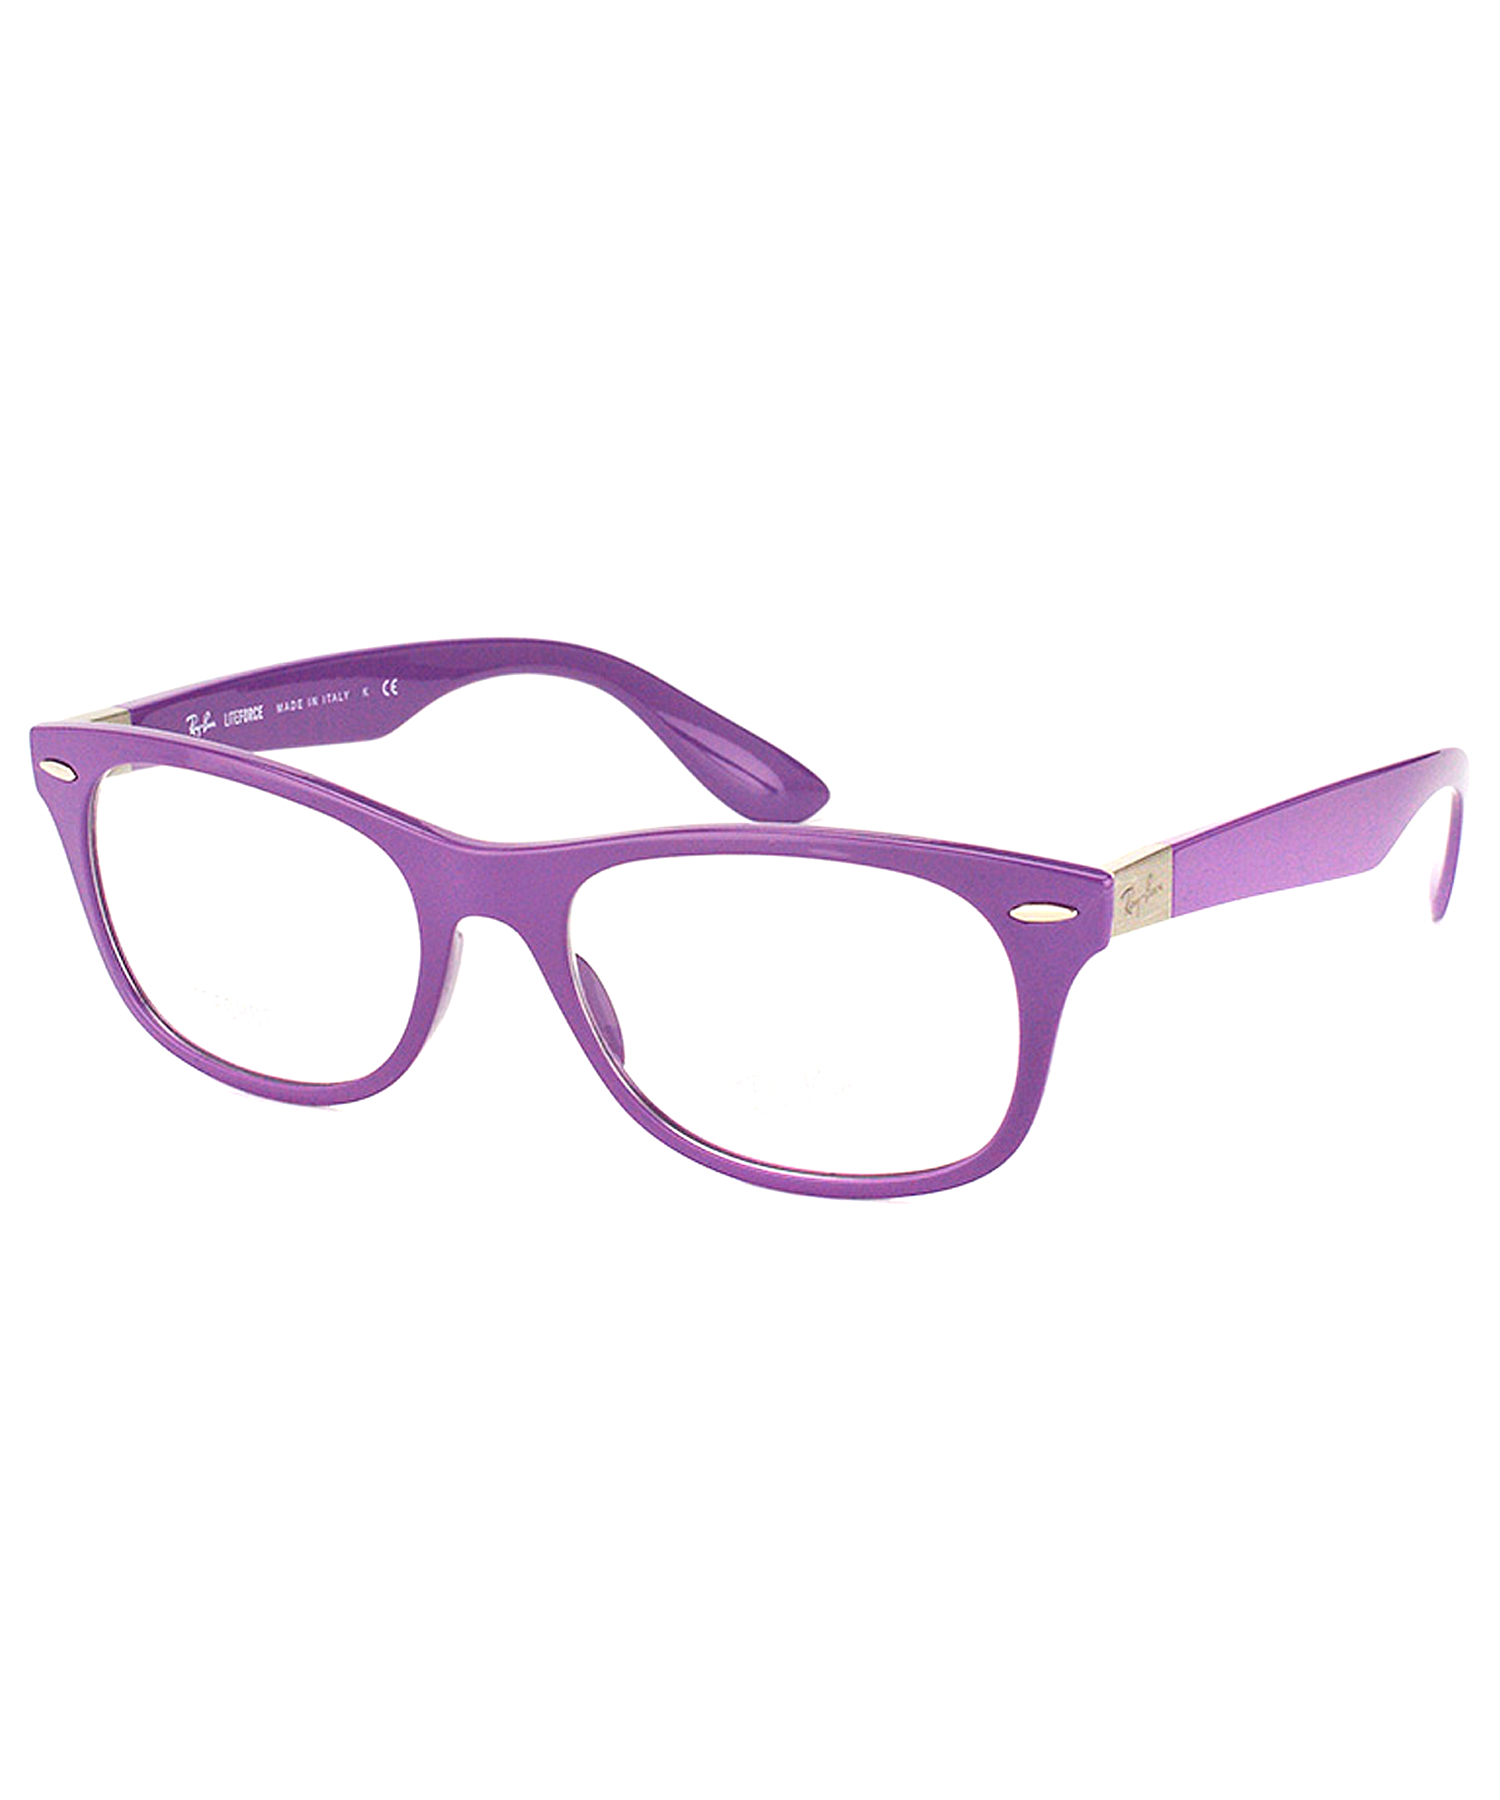 5acbe90e68537 Purple Ray Ban Wayfarer Optical « Heritage Malta